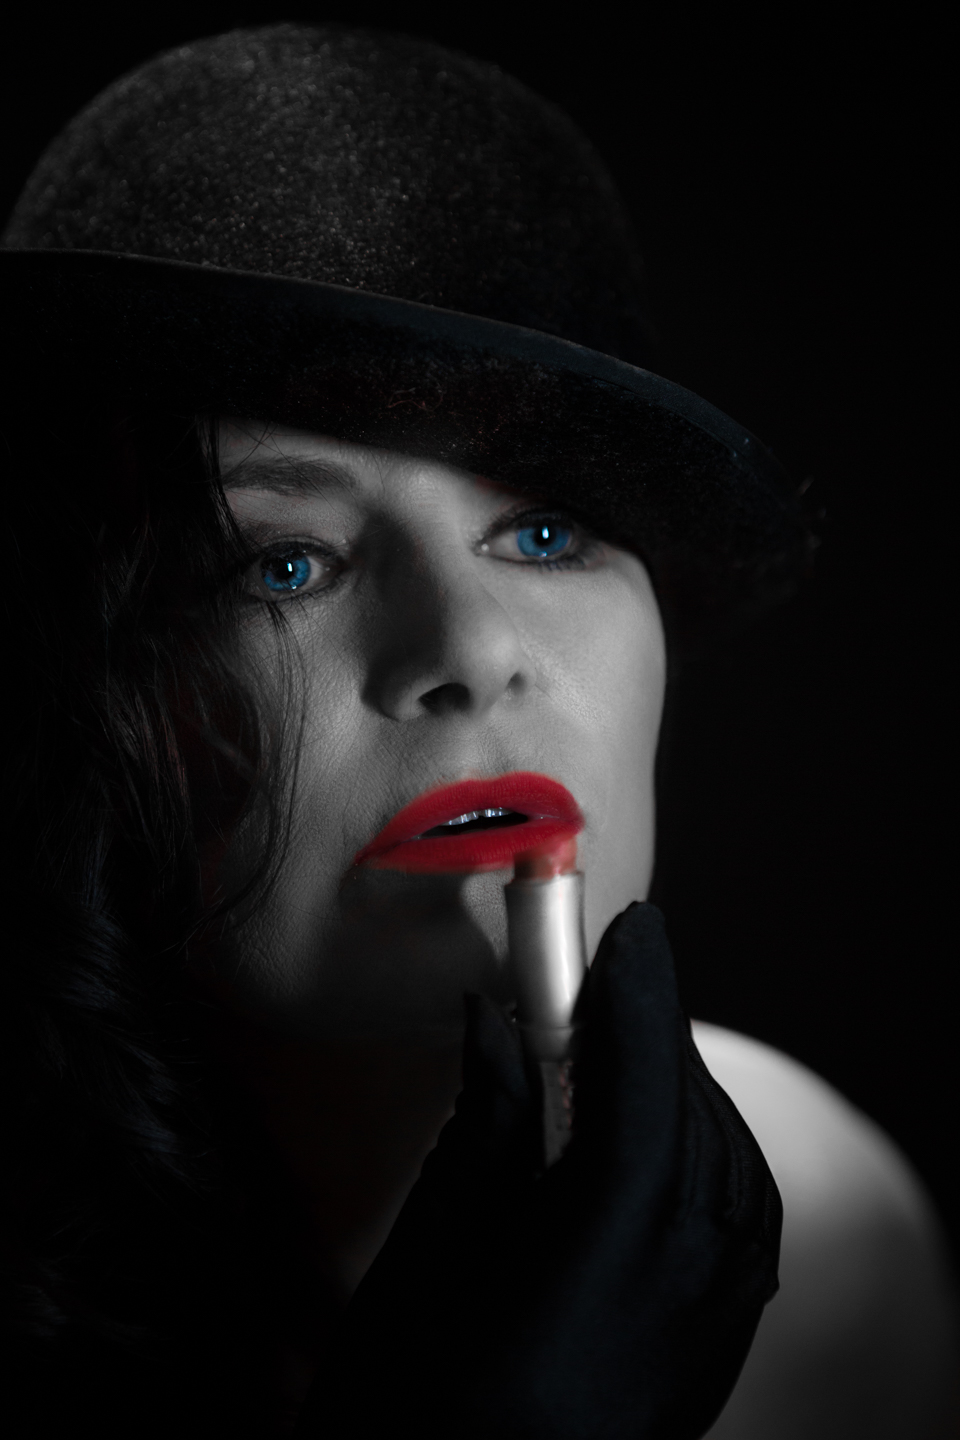 colour-pop red lips and blue eyes